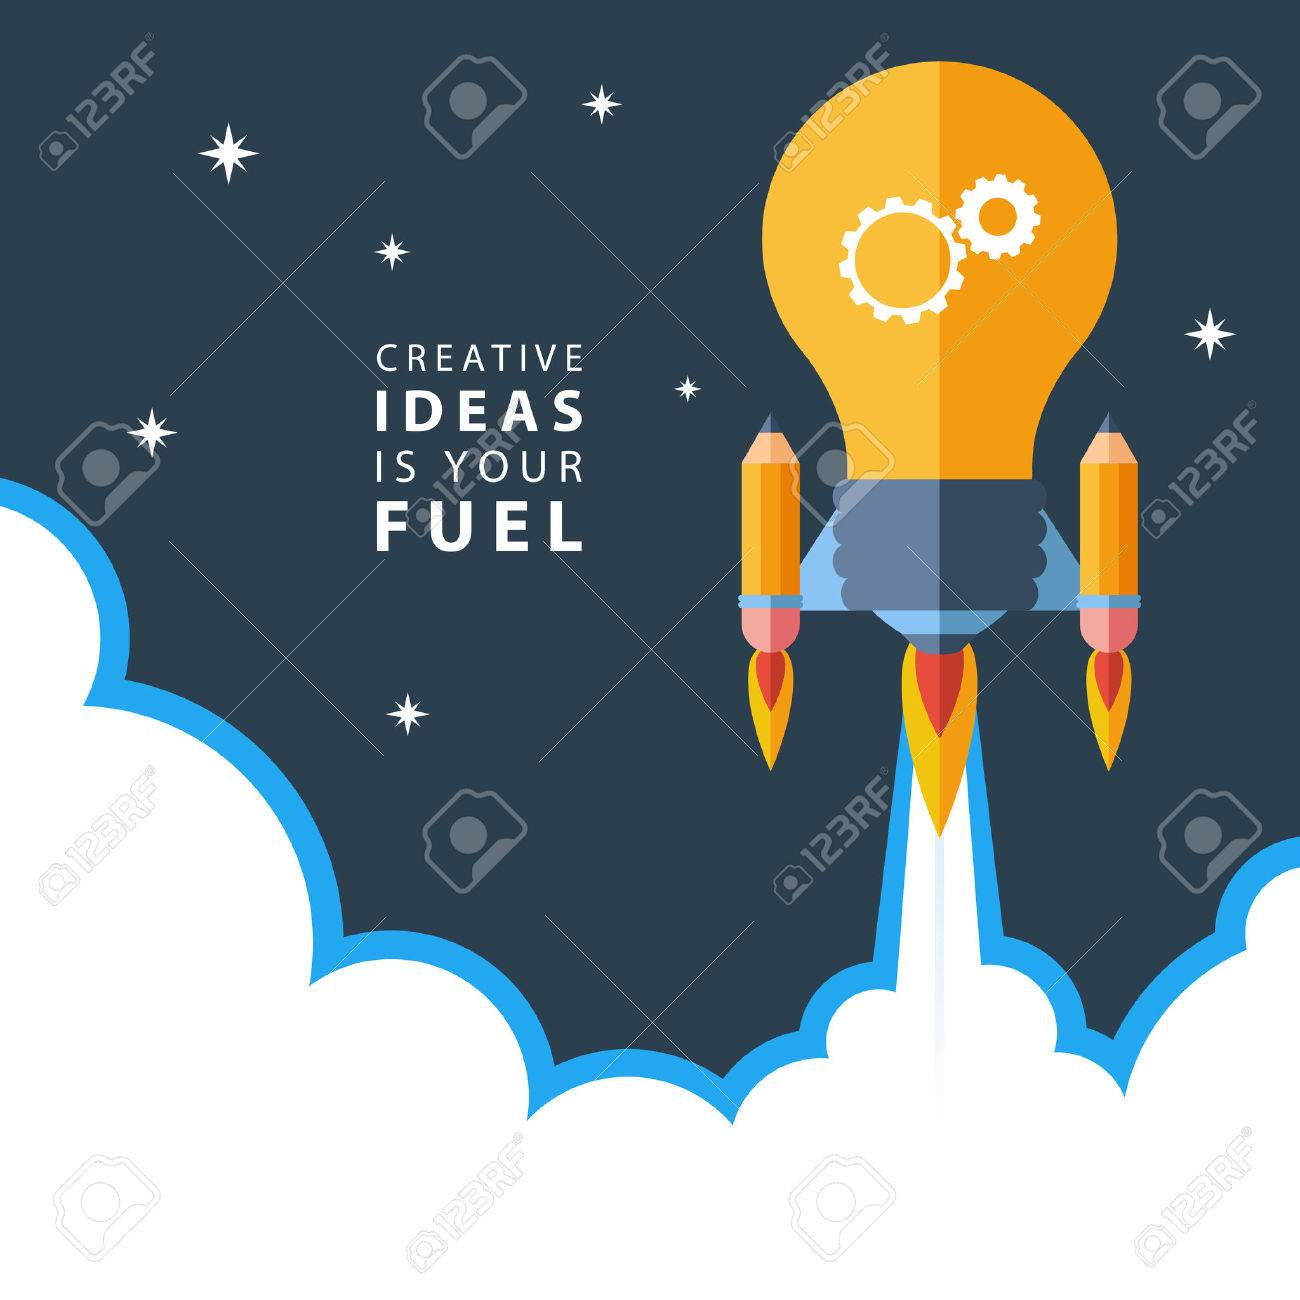 Creative ideas is your fuel. Flat design colorful vector illustration concept for creativity, big idea, creative work, starting new project. - 47178097